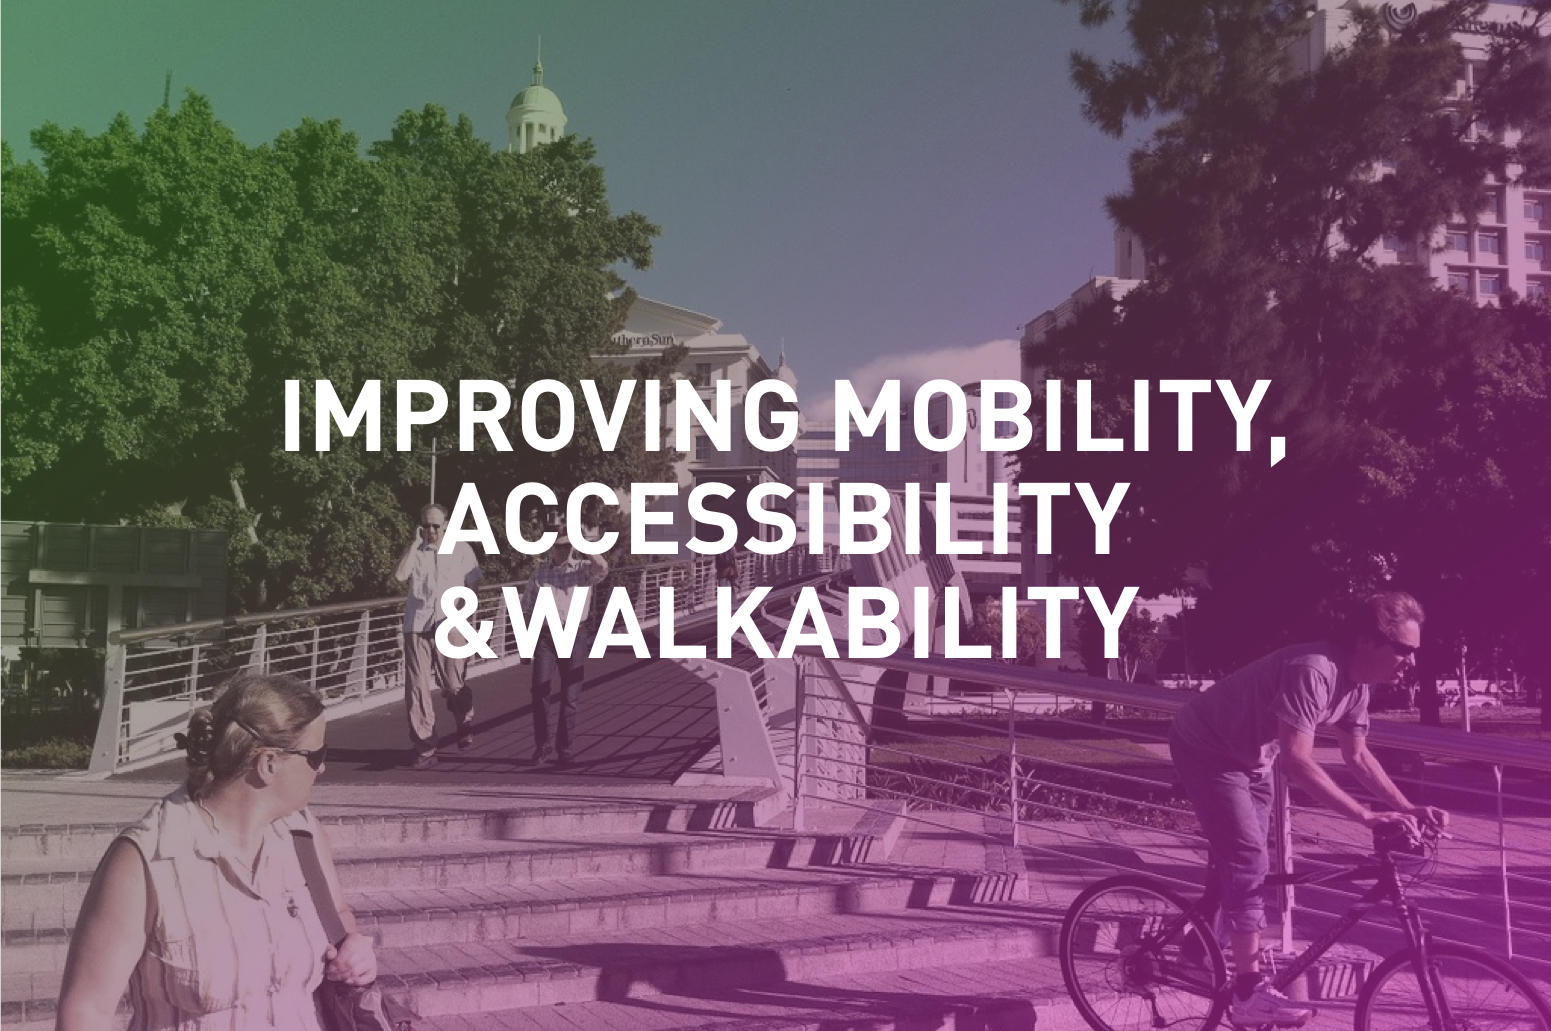 Rethinking how cities are designed for better, safer movement and access for people.